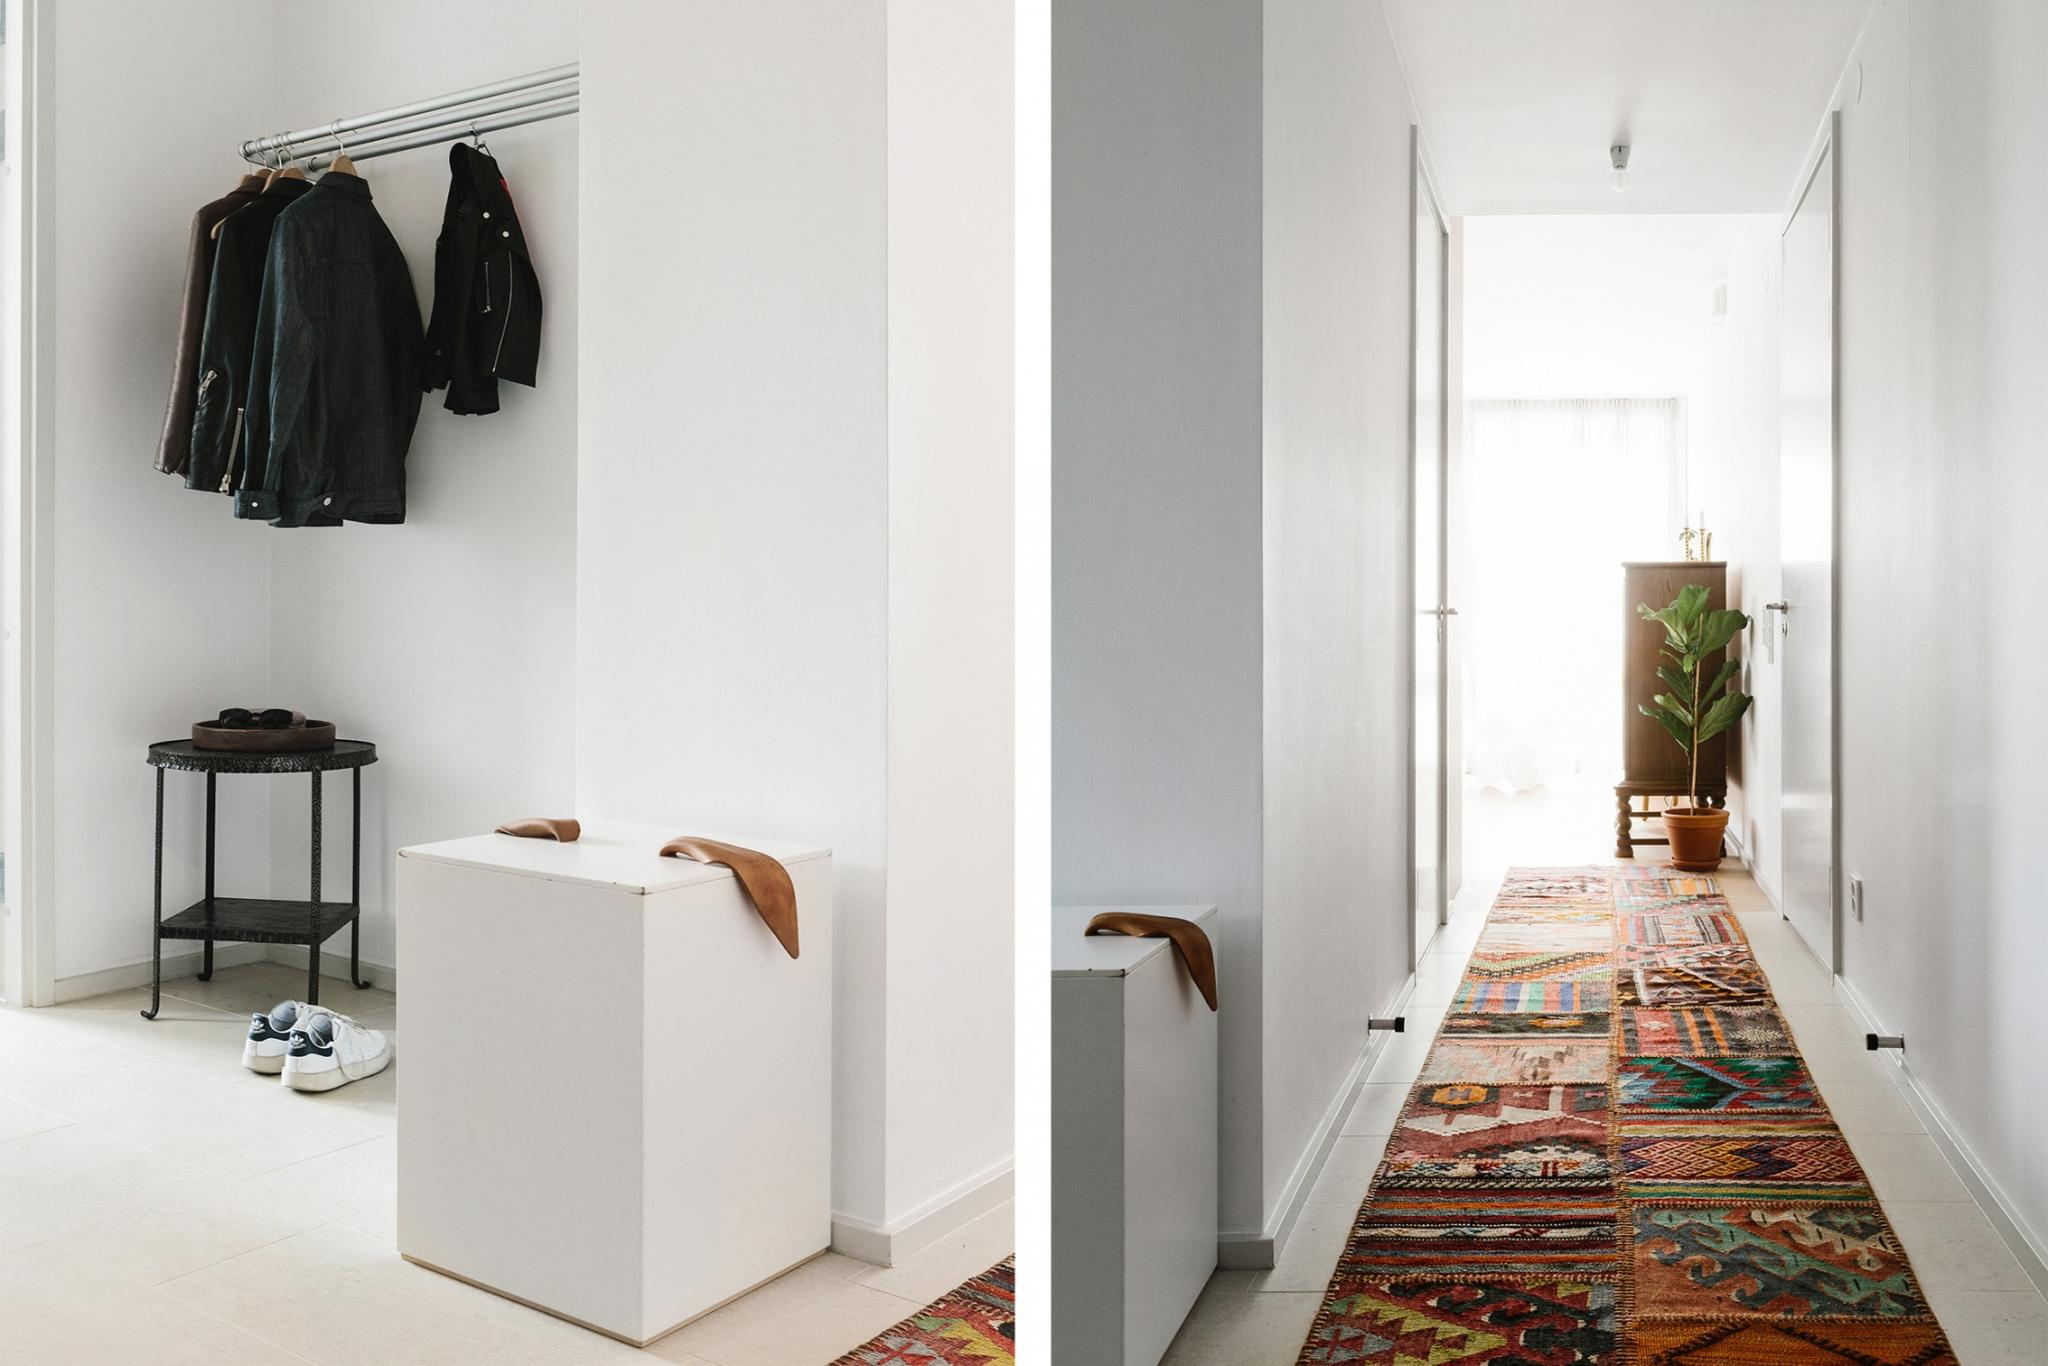 - An open hang space works well with clean lines - accessible coat racks are a winner.